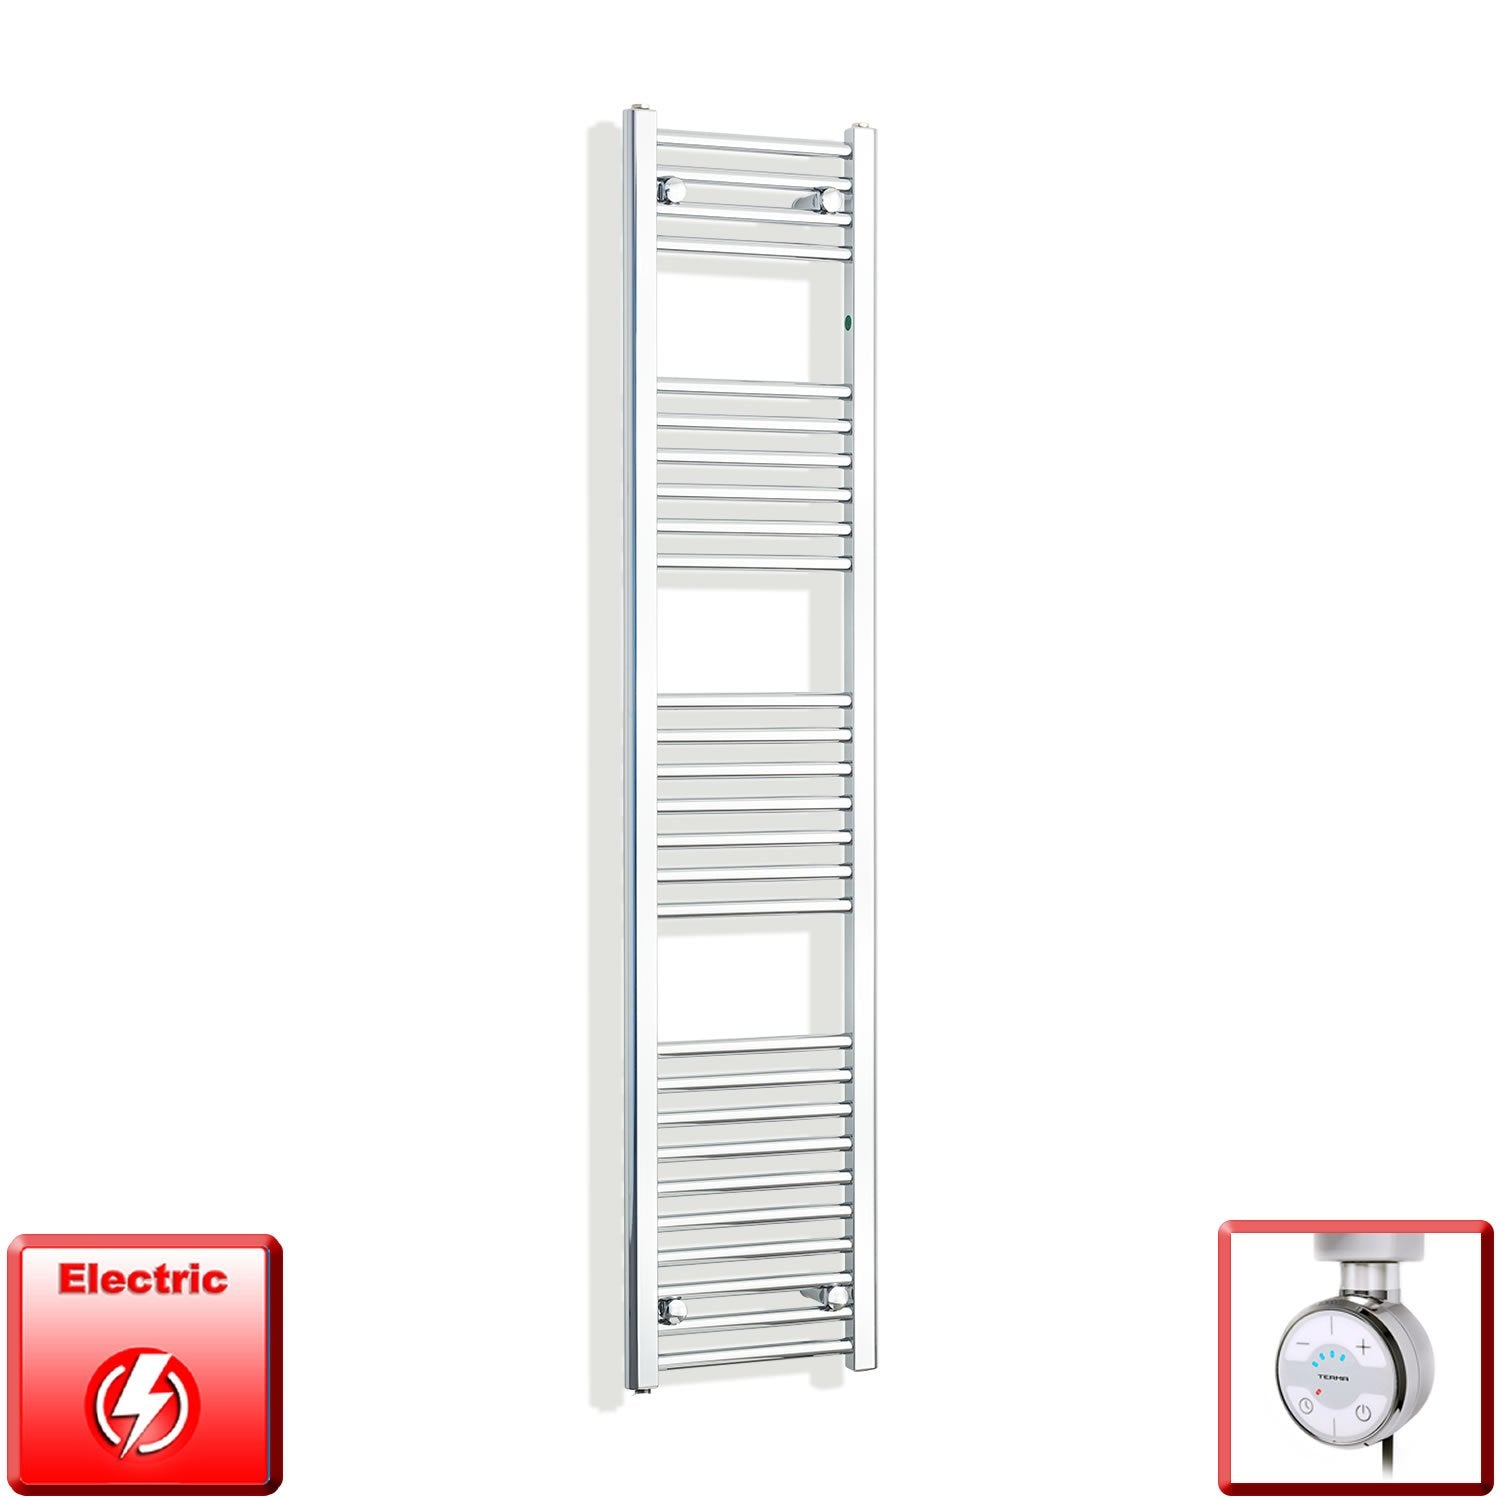 350mm Wide 1600mm High Flat Chrome Pre-Filled Electric Heated Towel Rail Radiator HTR,MOA Thermostatic Element